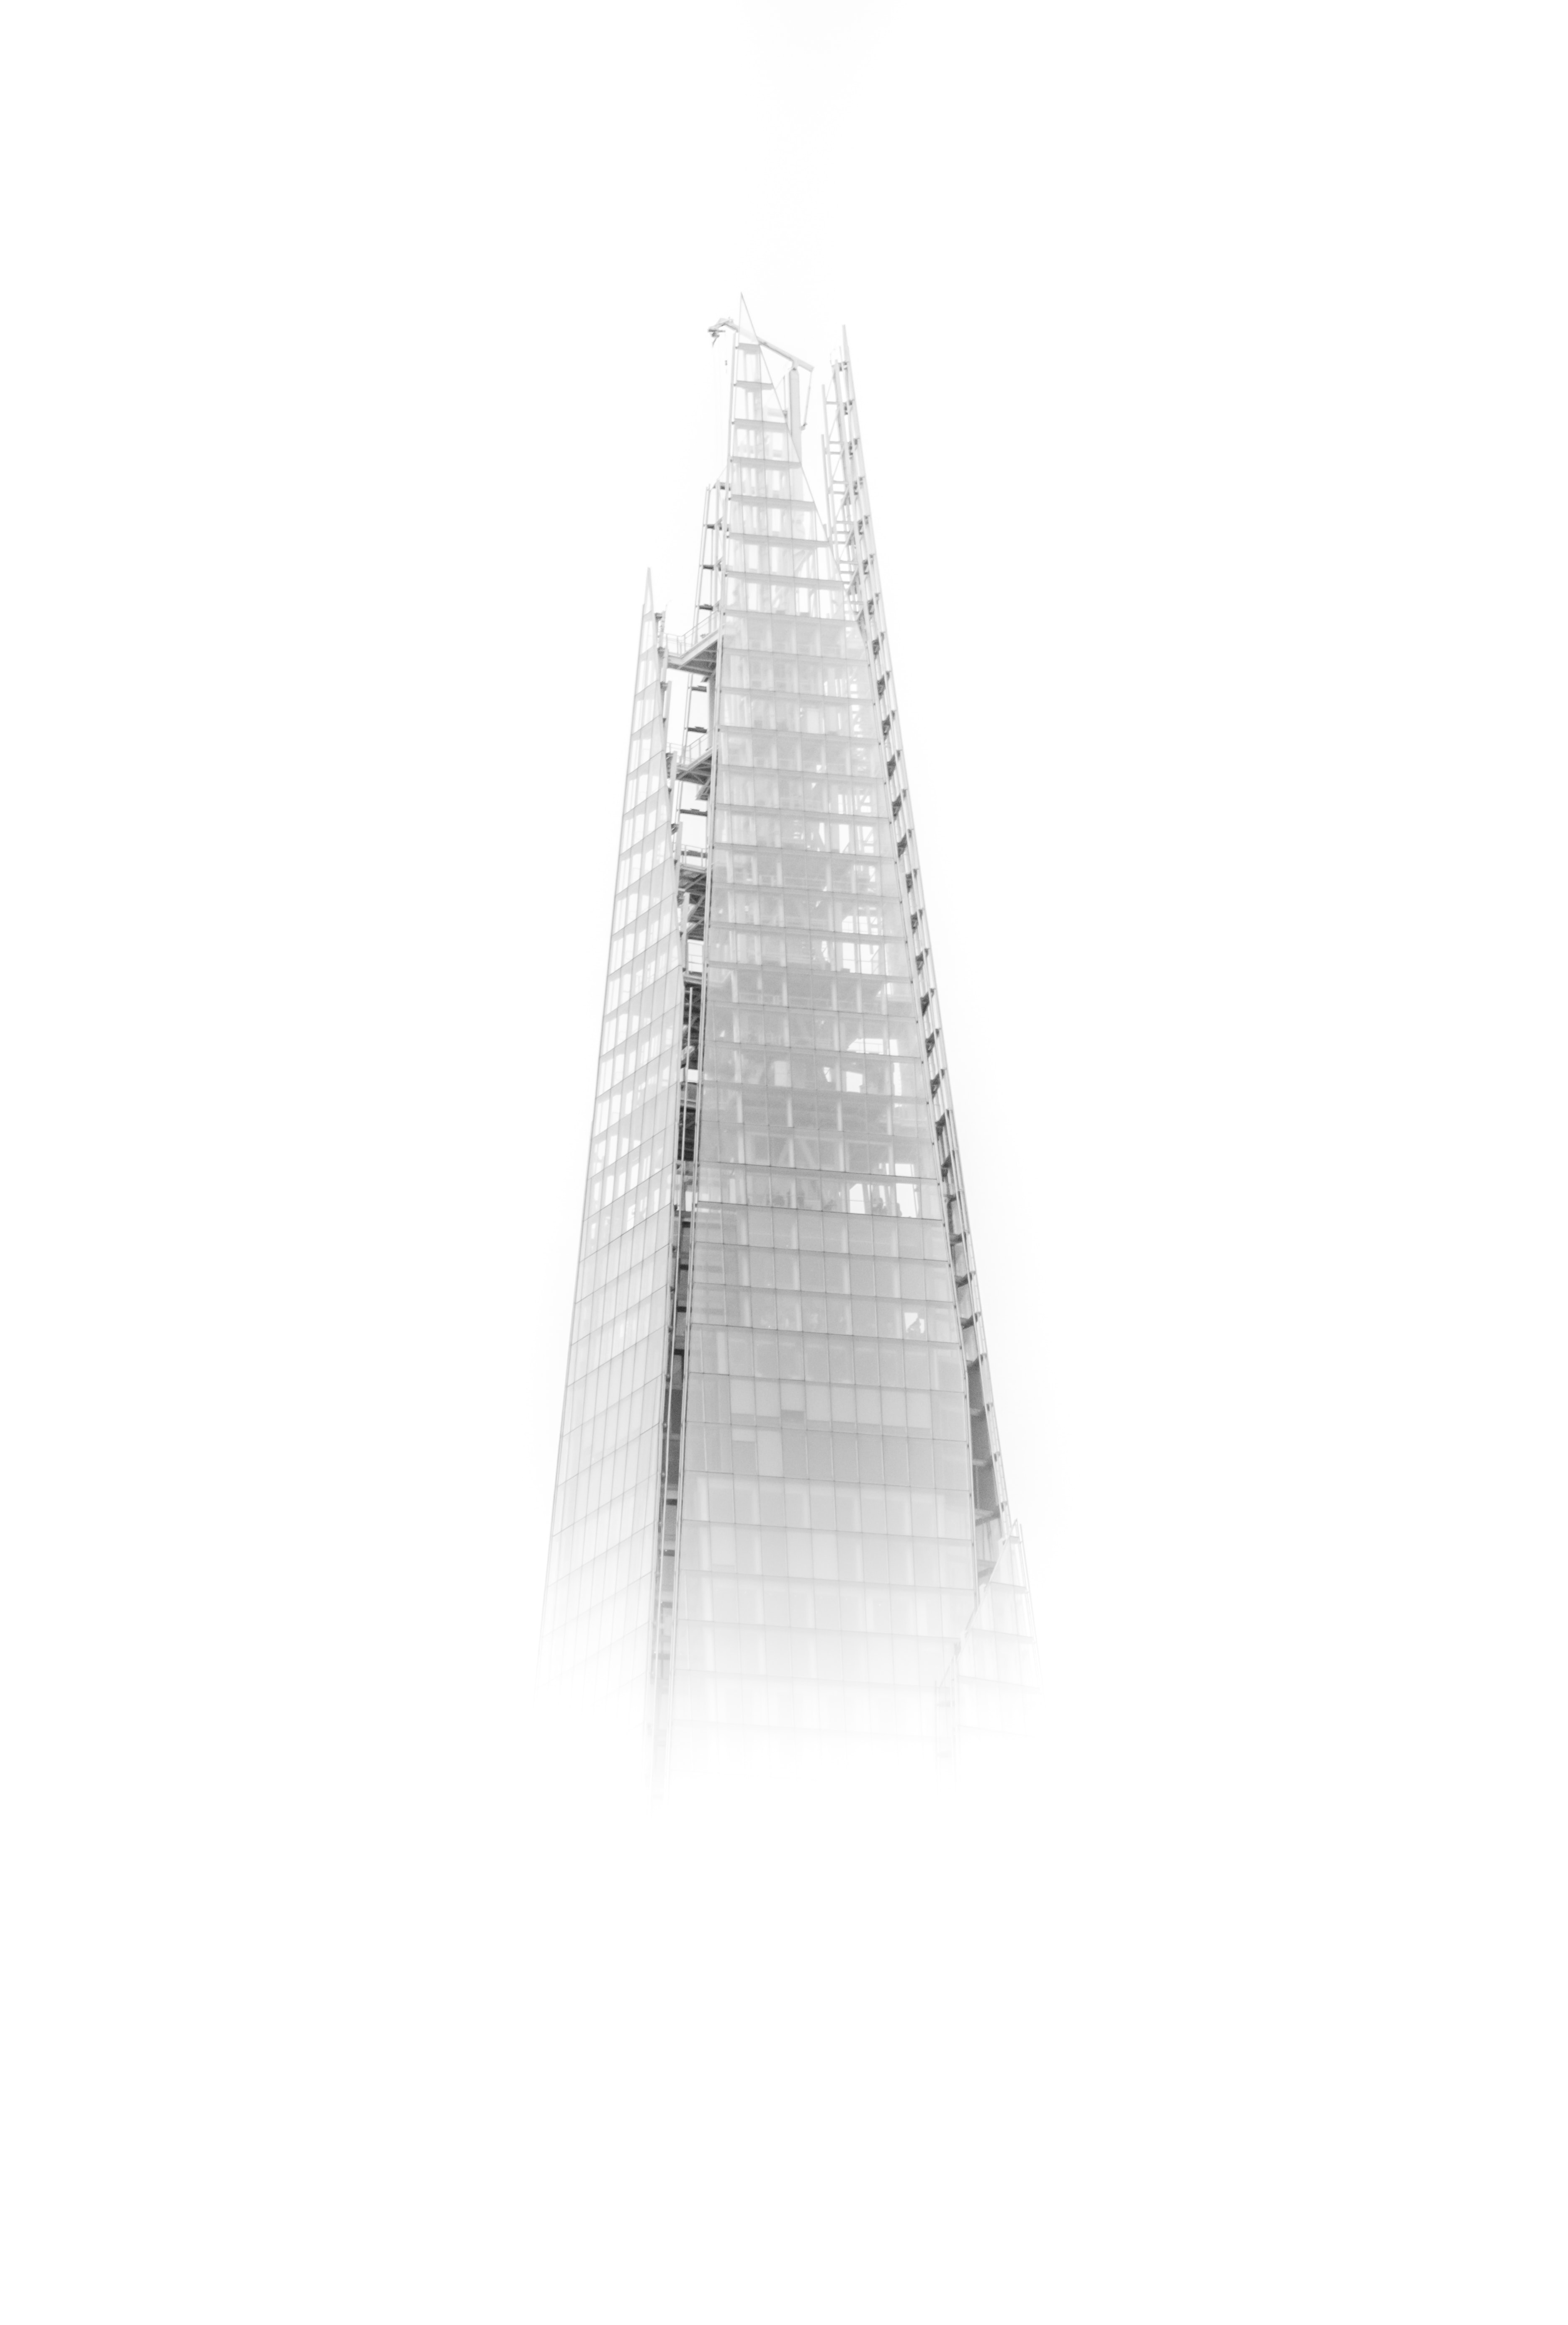 high-rise building with fogs